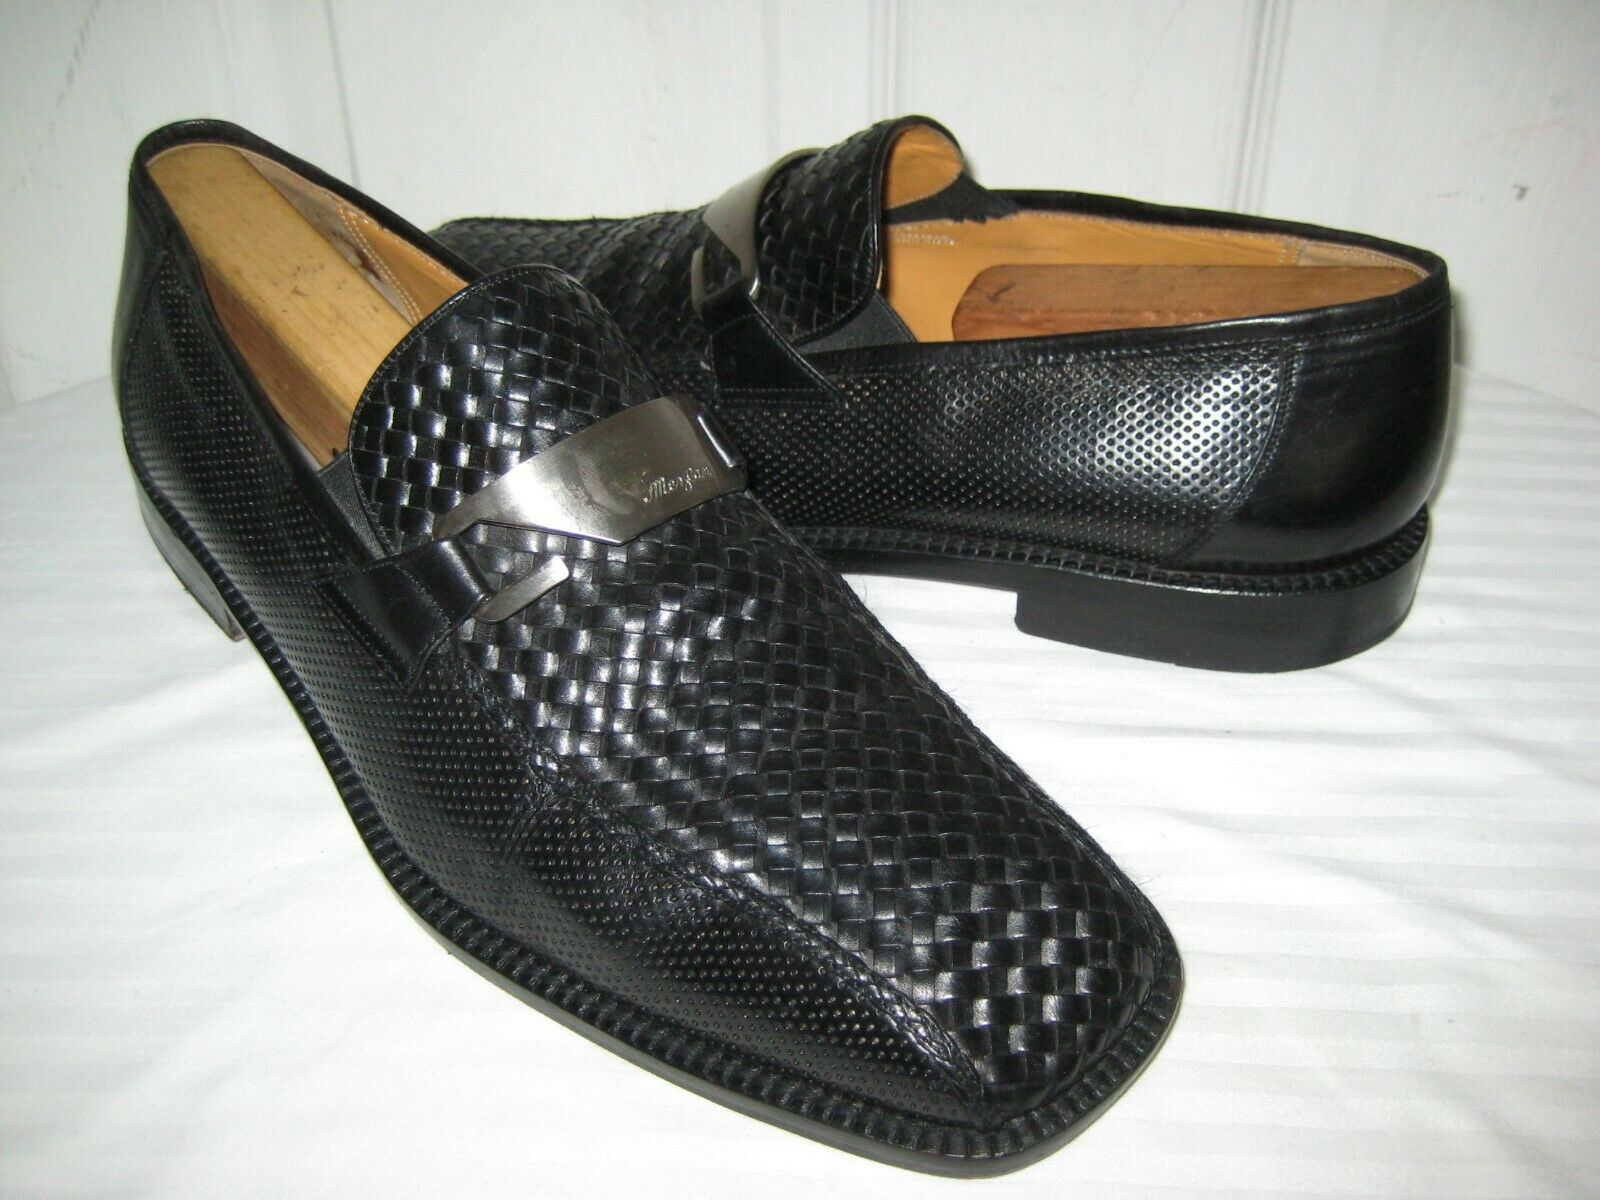 Mezlan Black Leather Hand Made Woven Loafer shoes Men's Size 11 M.